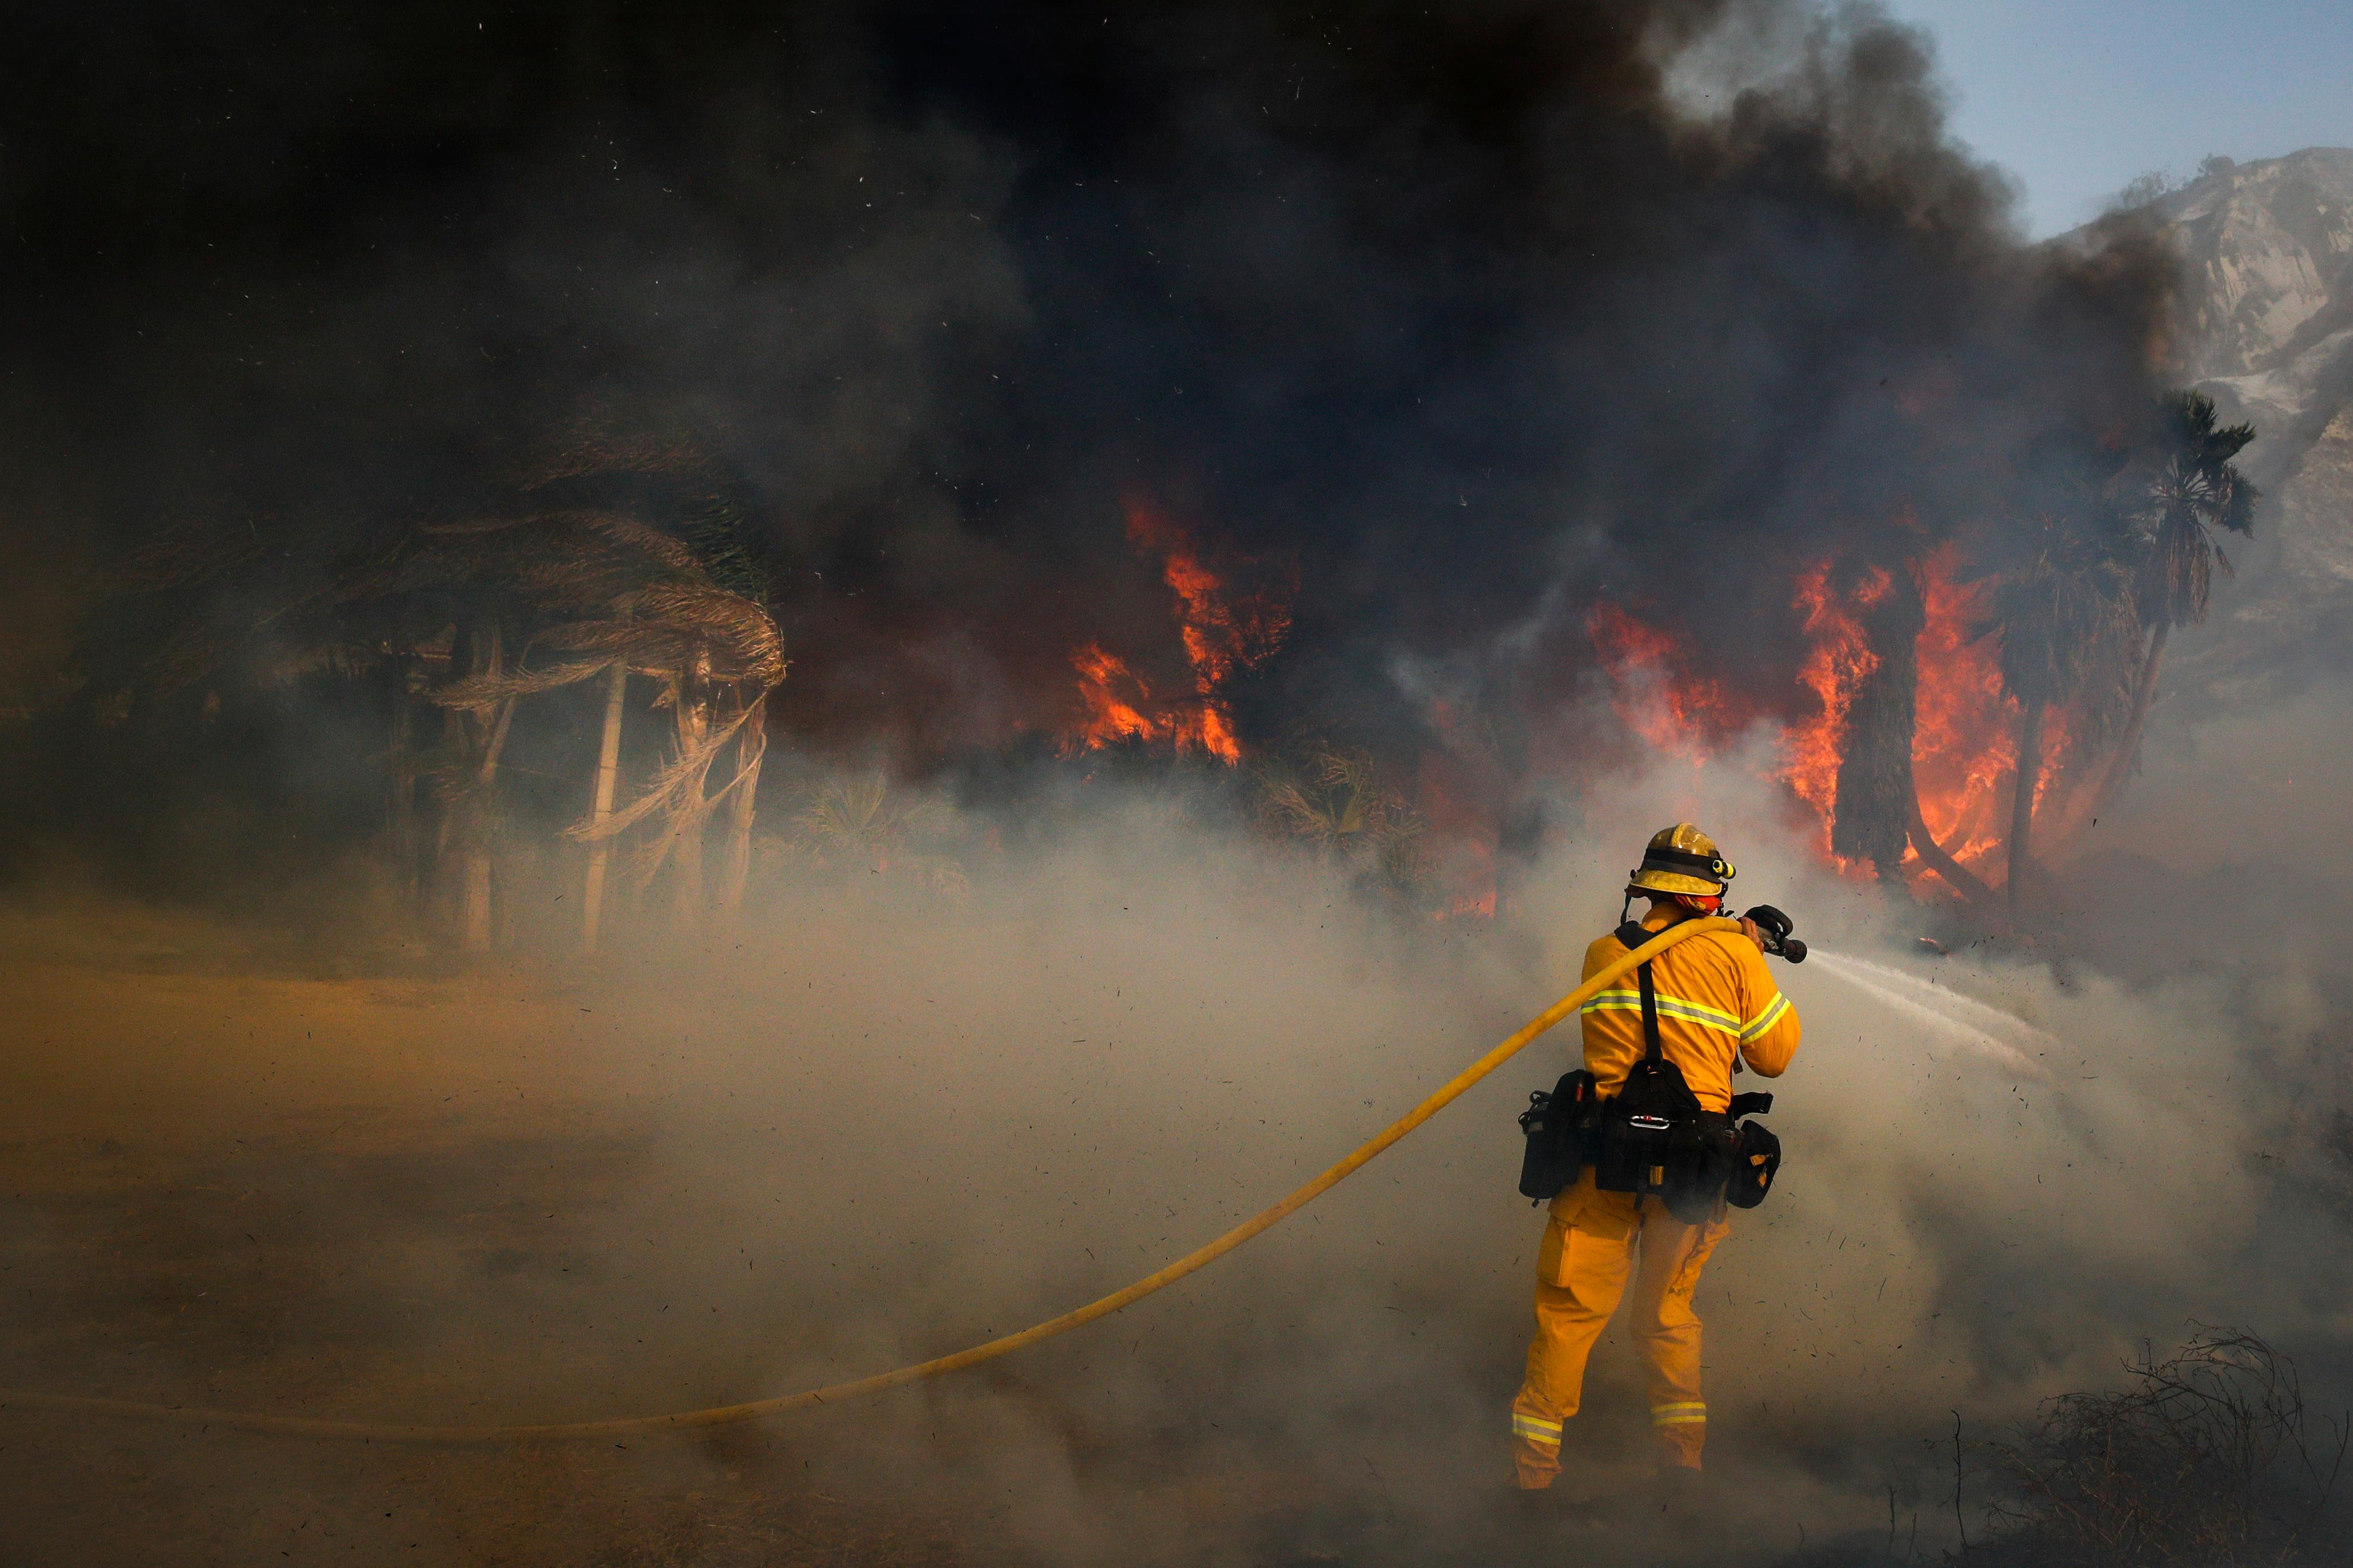 A firefighter battles a wildfire at Faria State Beach in Ventura, Calif., Thursday, Dec. 7, 2017. The wind-swept blazes have forced tens of thousands of evacuations and destroyed dozens of homes. (AP Photo/Jae C. Hong)